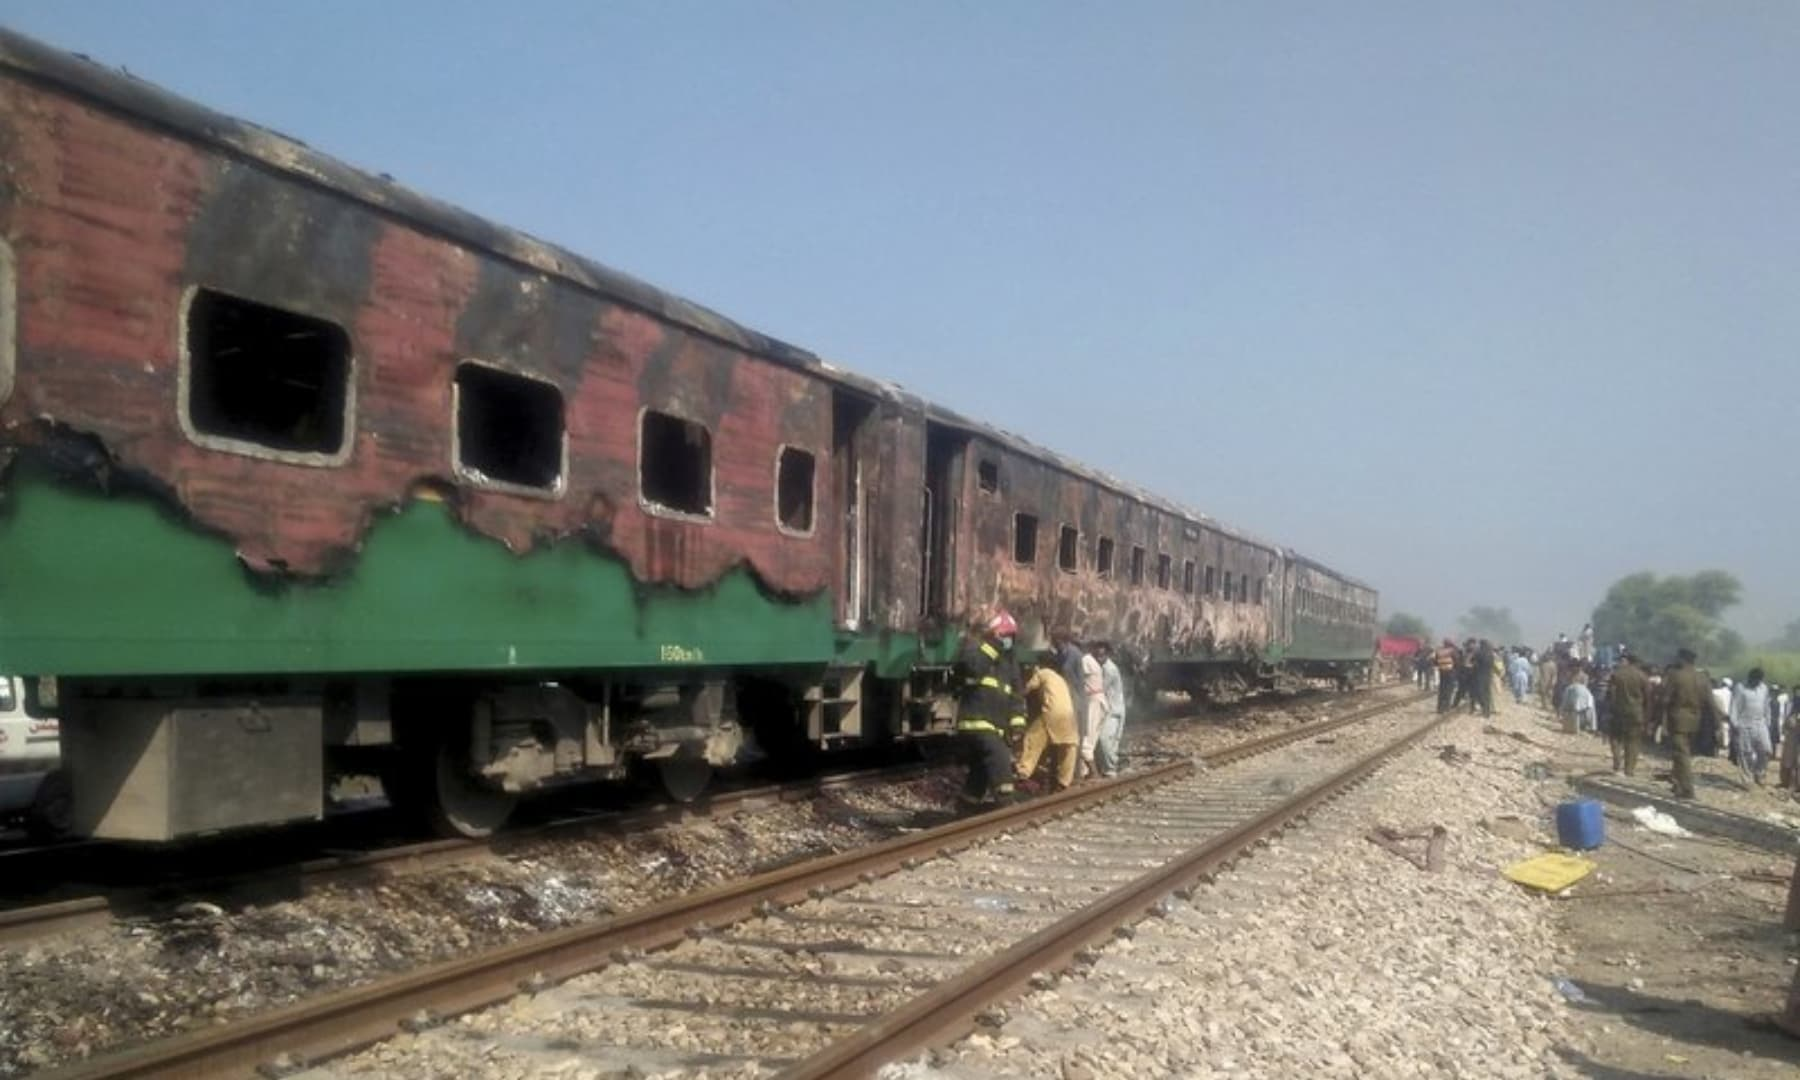 Officials examine a train damaged by a fire in Liaquatpur, Oct 31, 2019. — AP/File